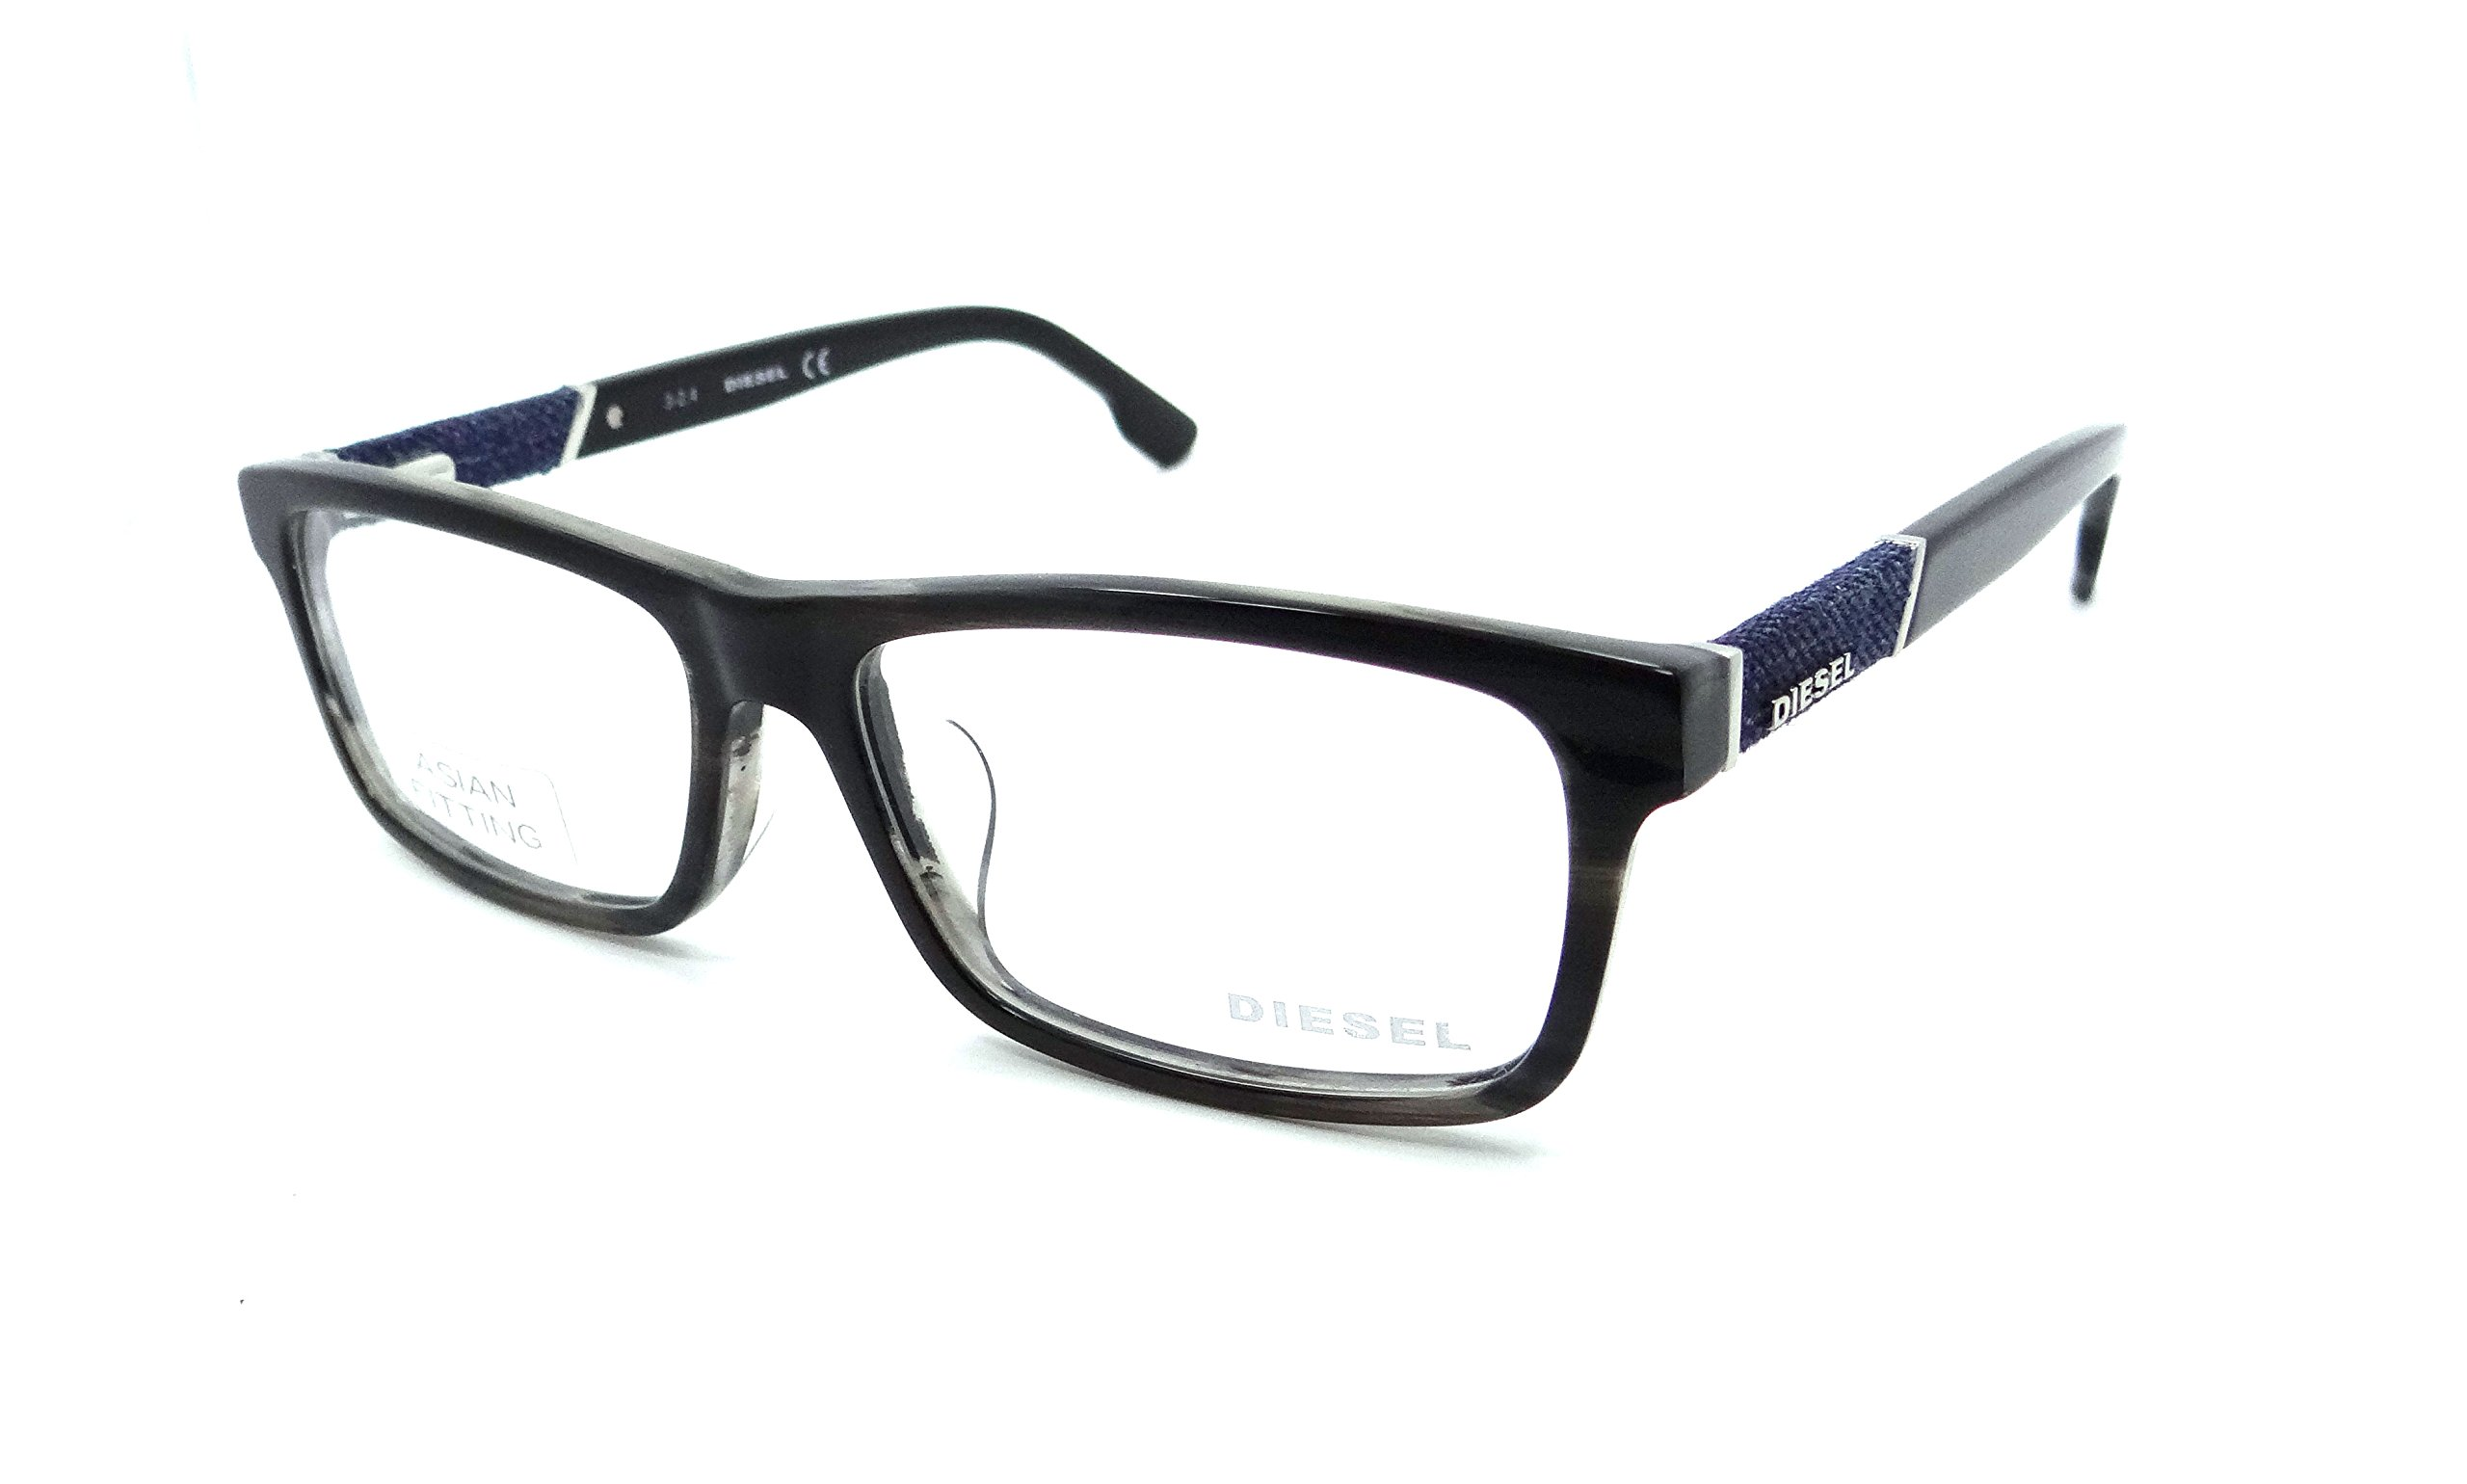 Diesel Rx Eyeglasses Frames DL5126-F 020 58-16-150 Brown Grey Striped Asian Fit